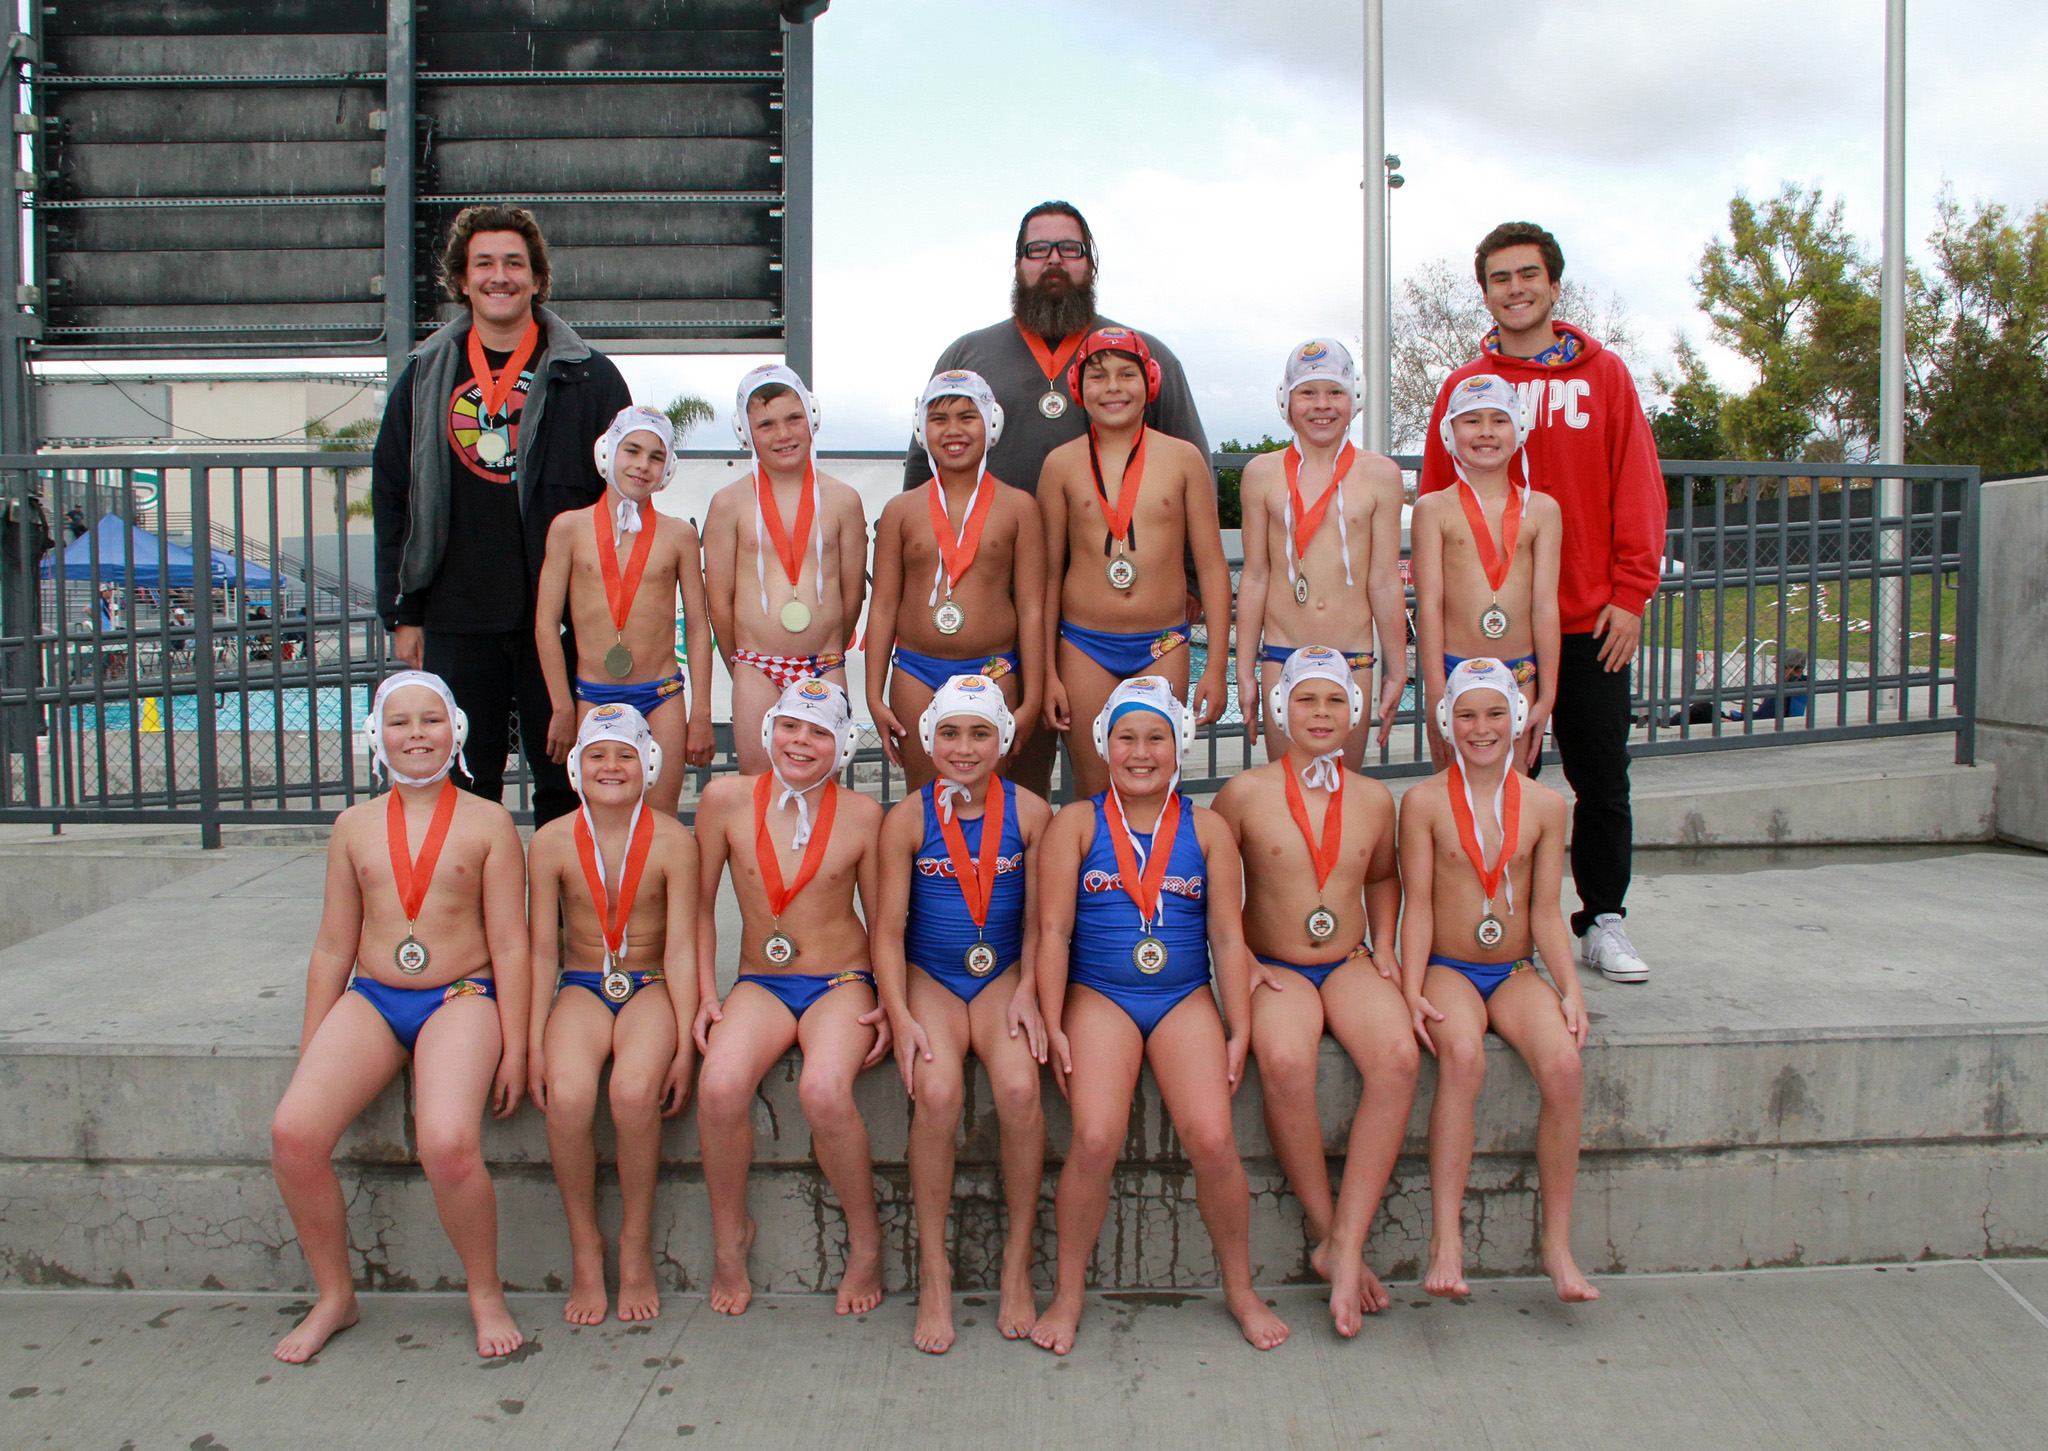 OCWPC-10Ucoed-2018-turbo-OC-Cup-Gold-Medal-Winners_sm